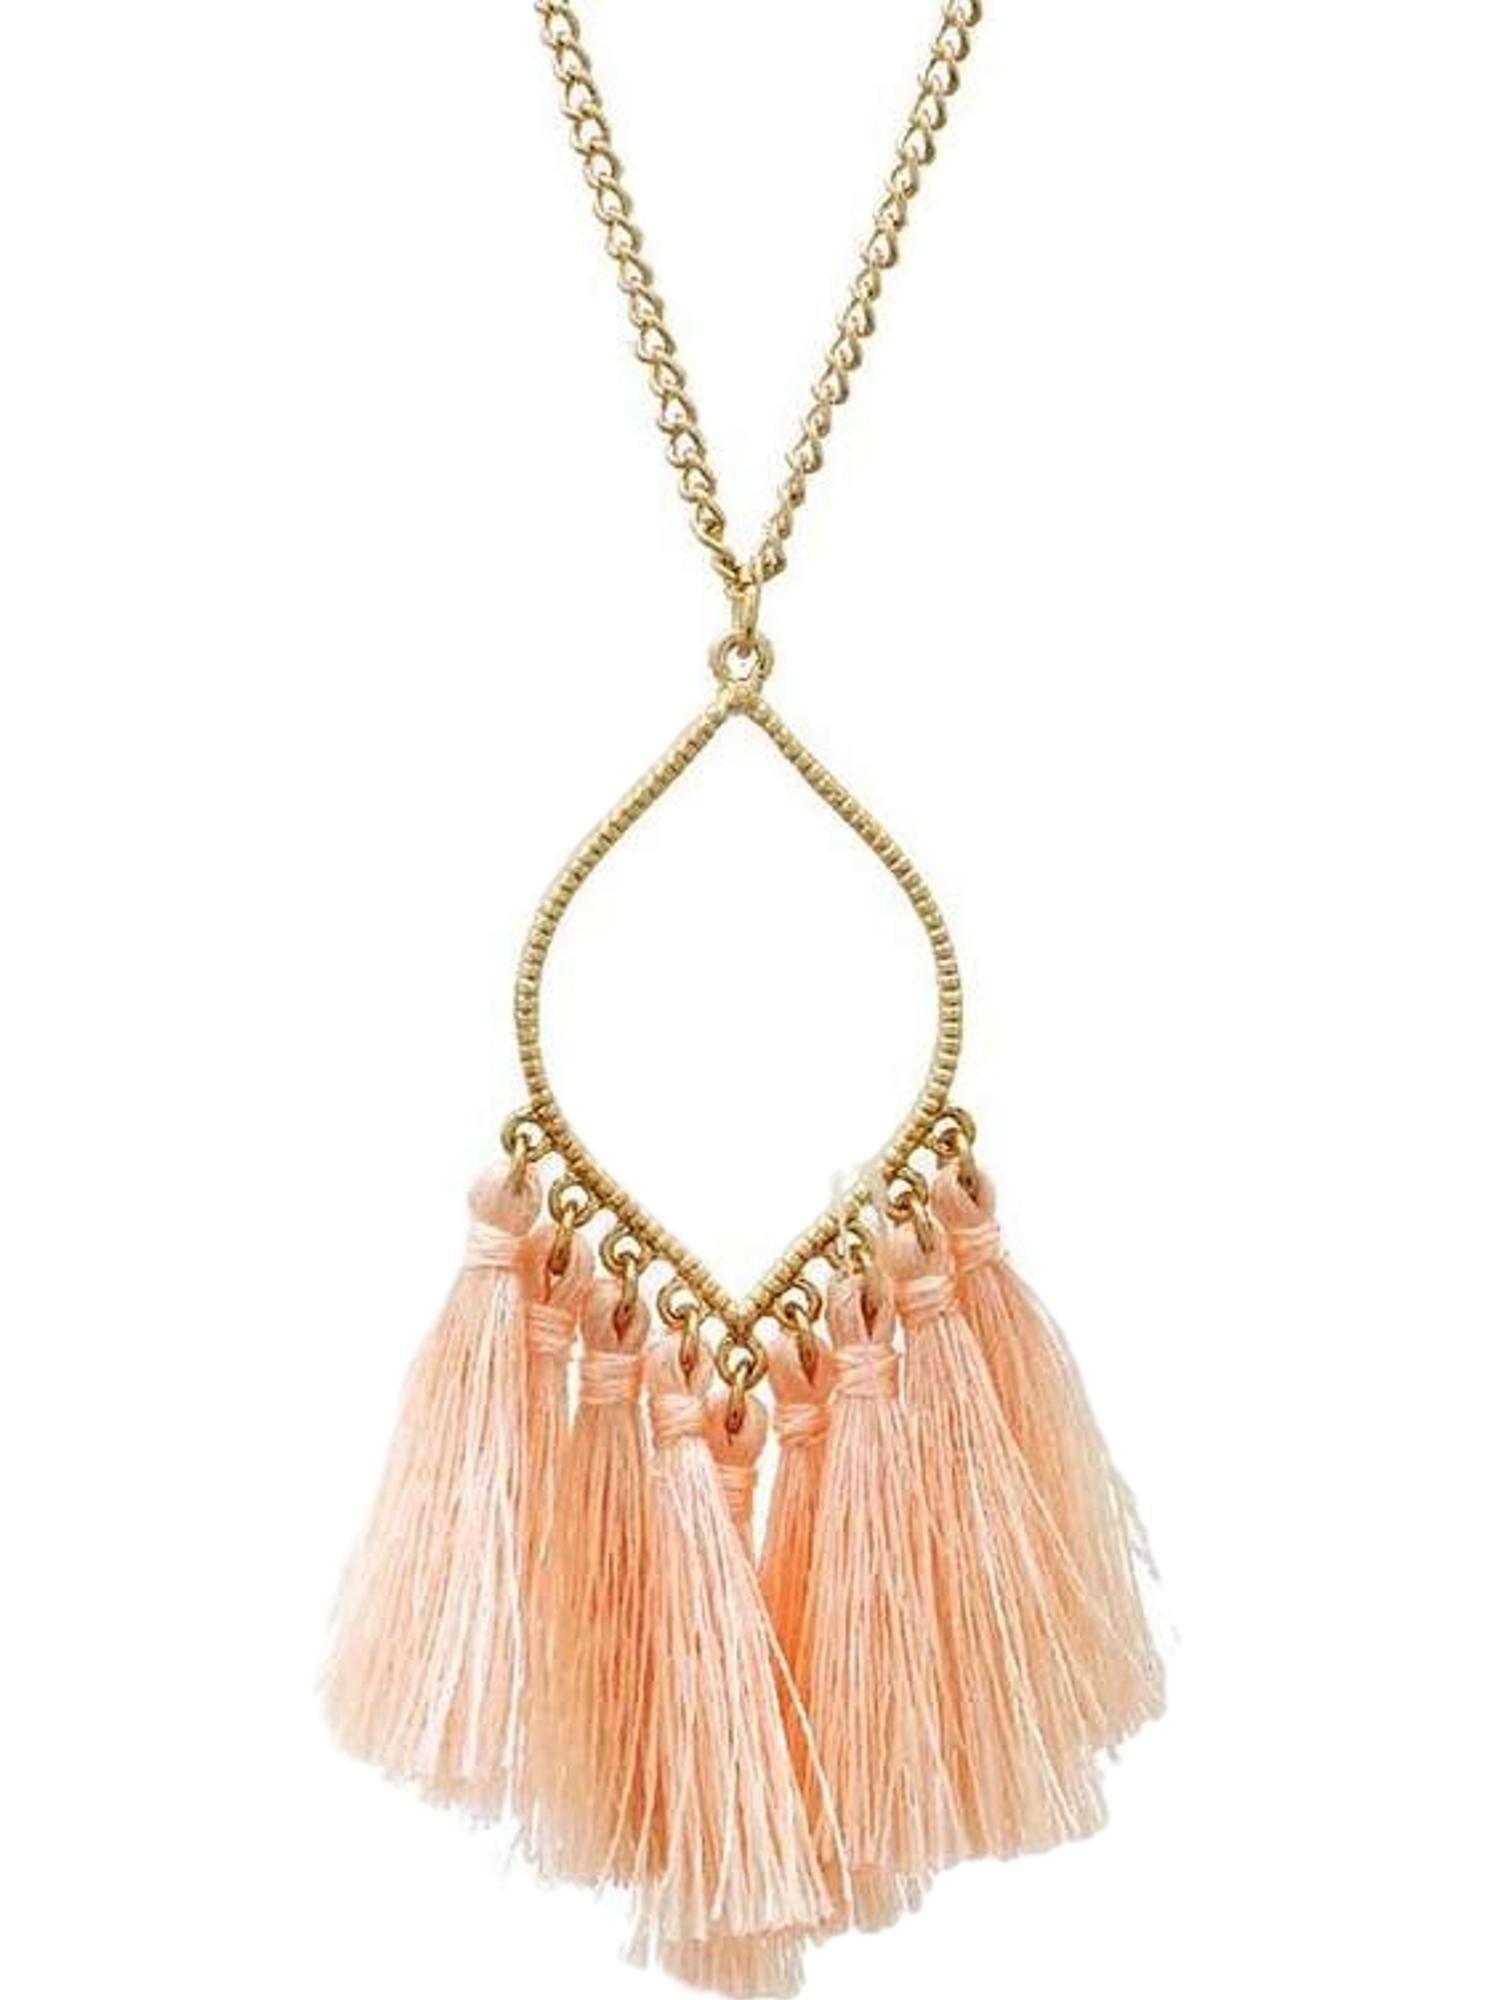 qlt slide fit necklace view beaded phoenix tassel constrain redesign hei zoom urban shop d outfitters